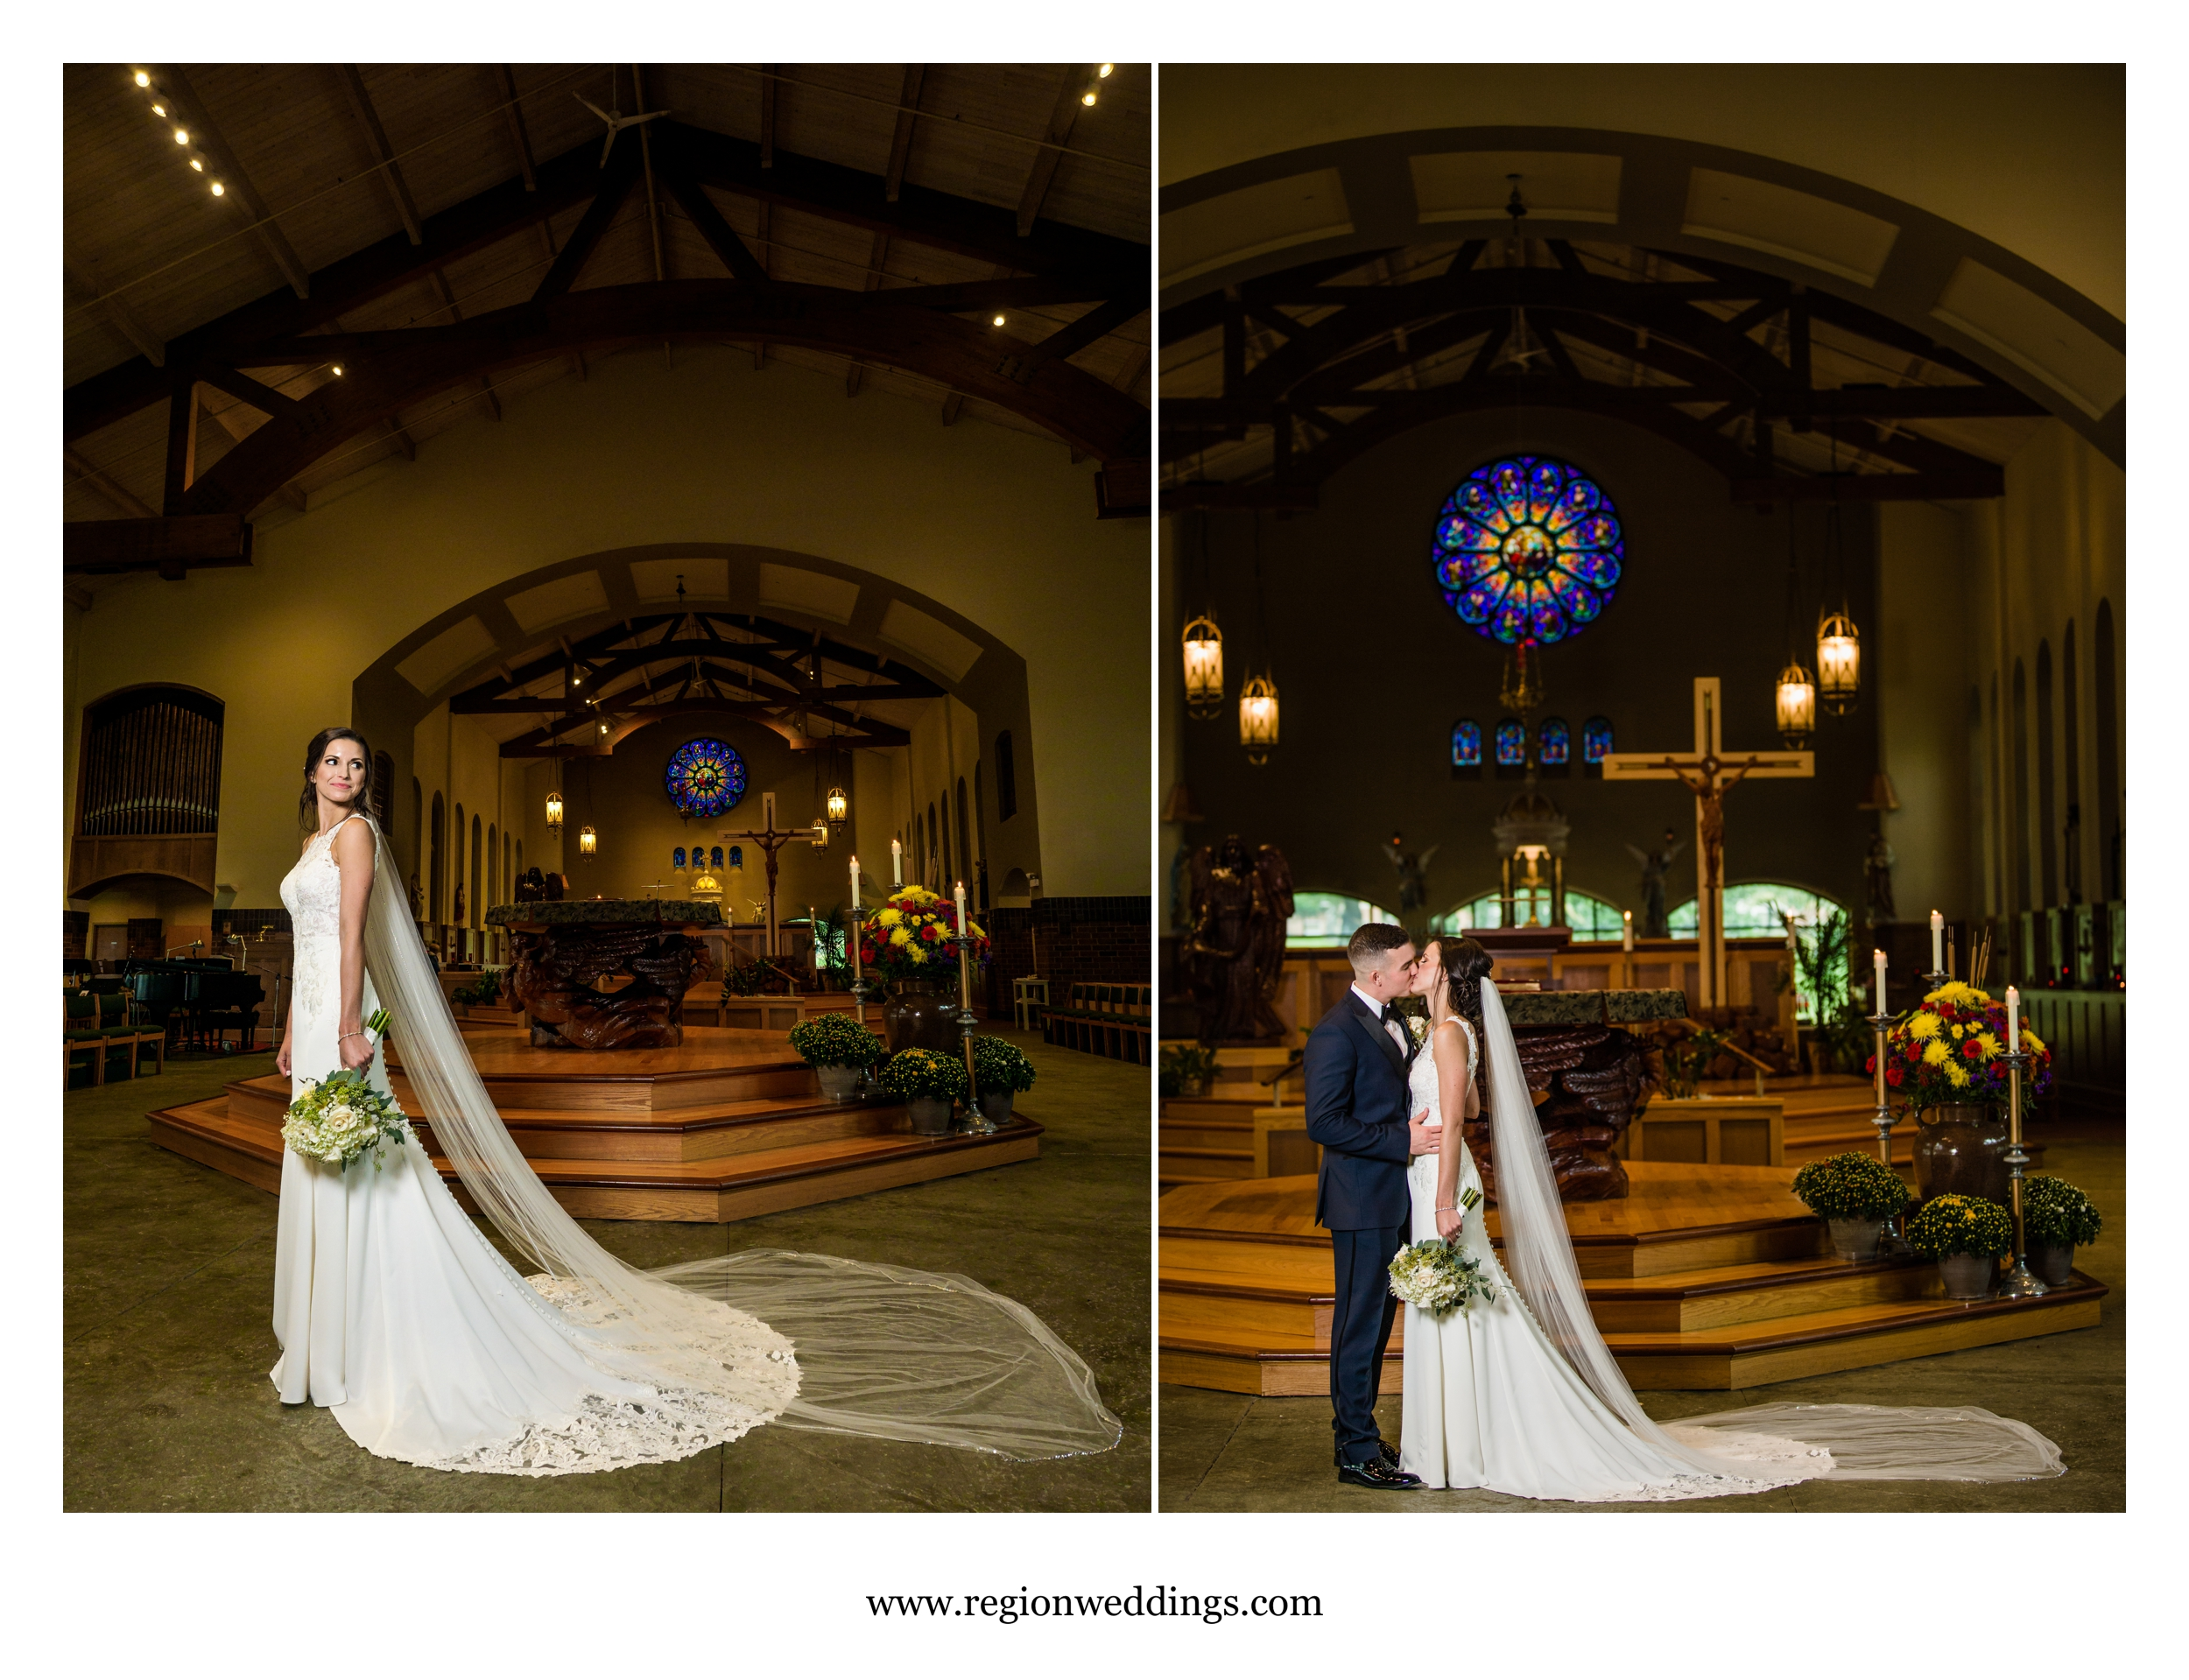 Formal photos of the bride and groom in church.